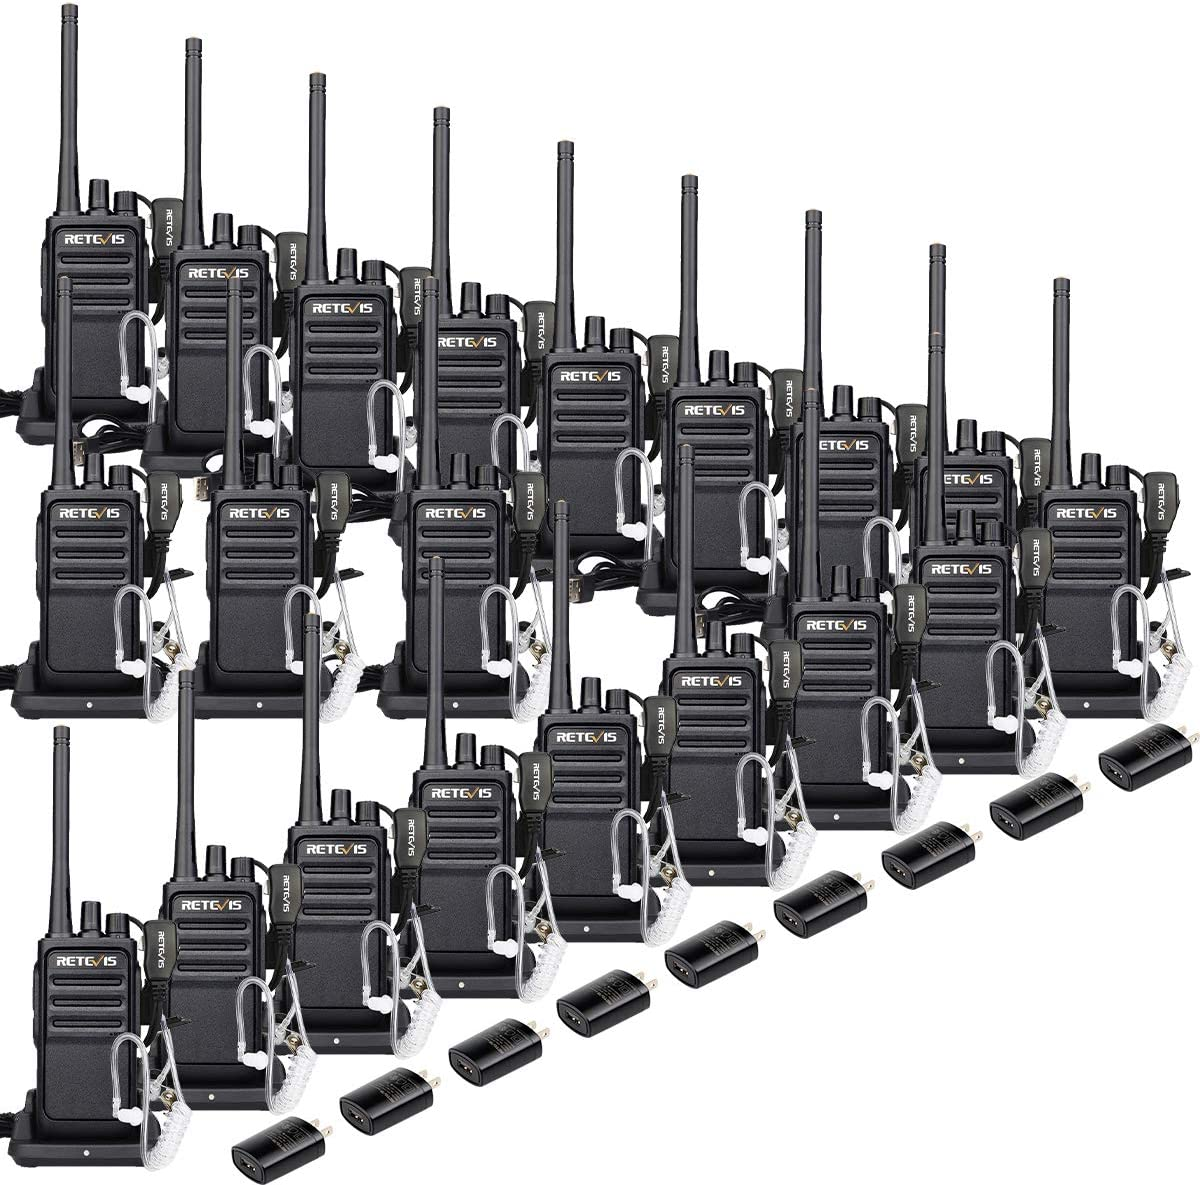 Retevis RT17 20 Pack Wakie Talkies with Earpiece 2 Pin FRS 16 Ch Monitor 2 Way Radios Rechargeable Long Range Two Way Radios